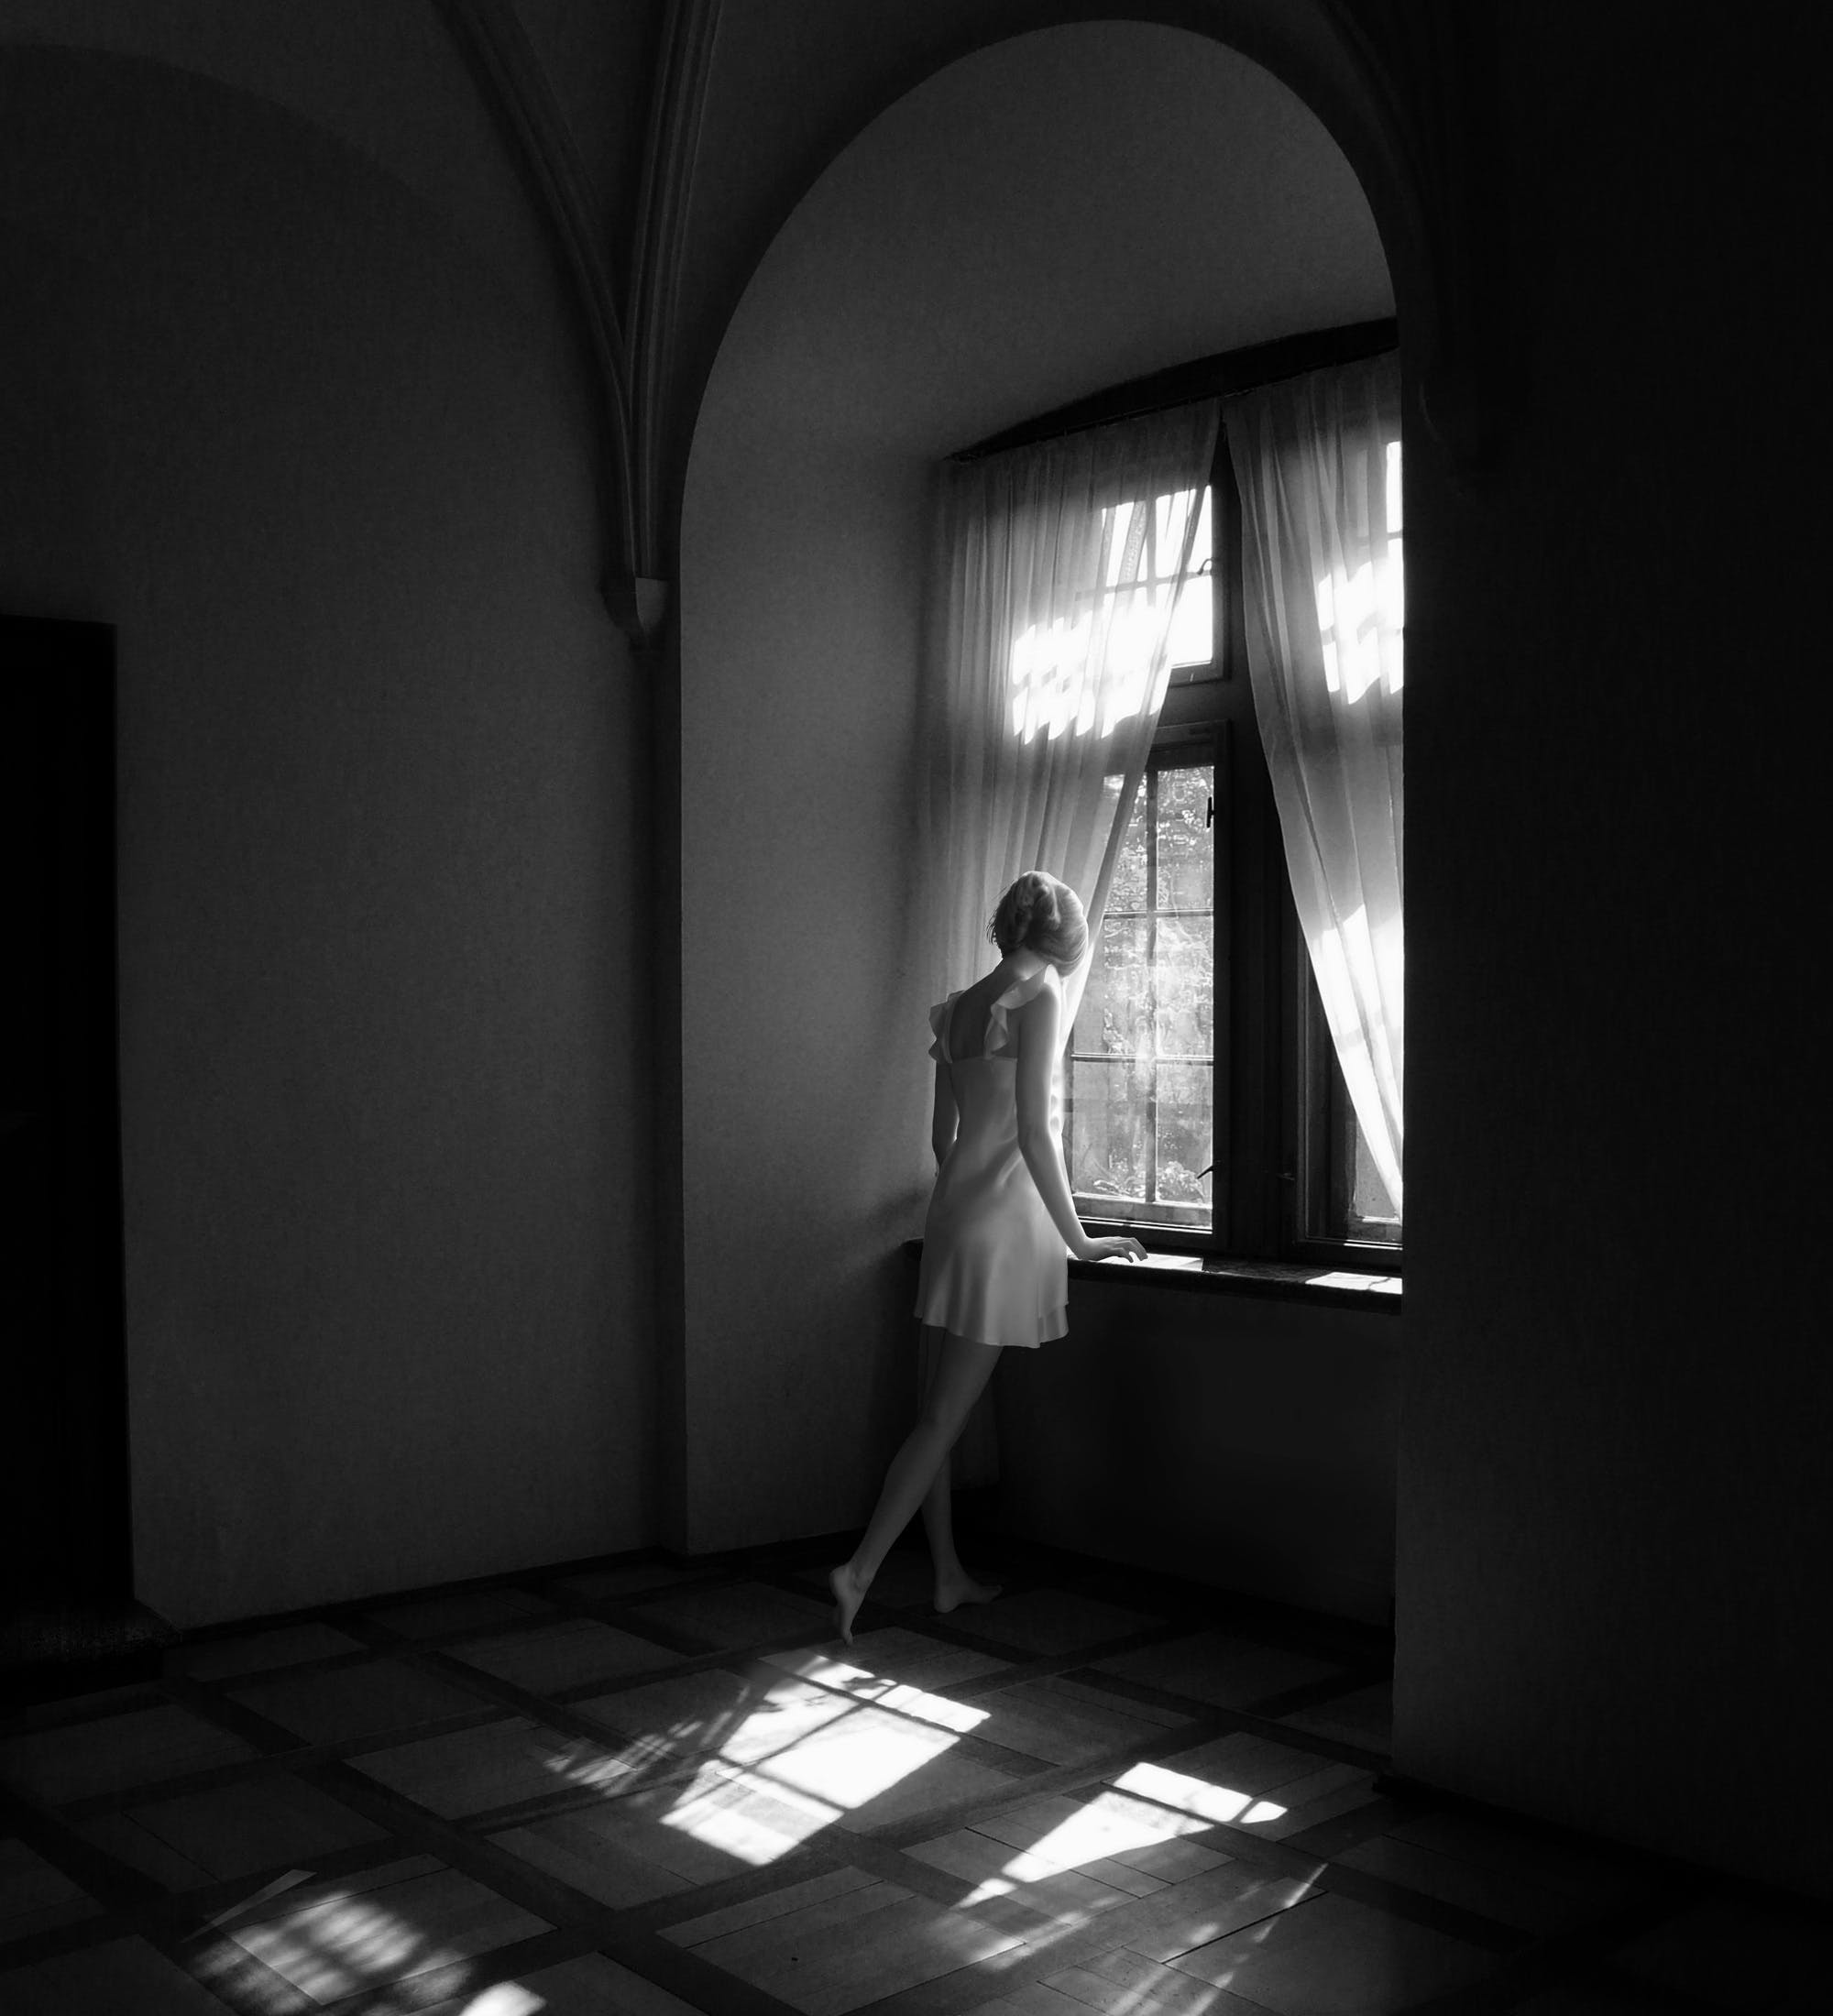 Woman Standing Beside Closed Window Grayscale Photo